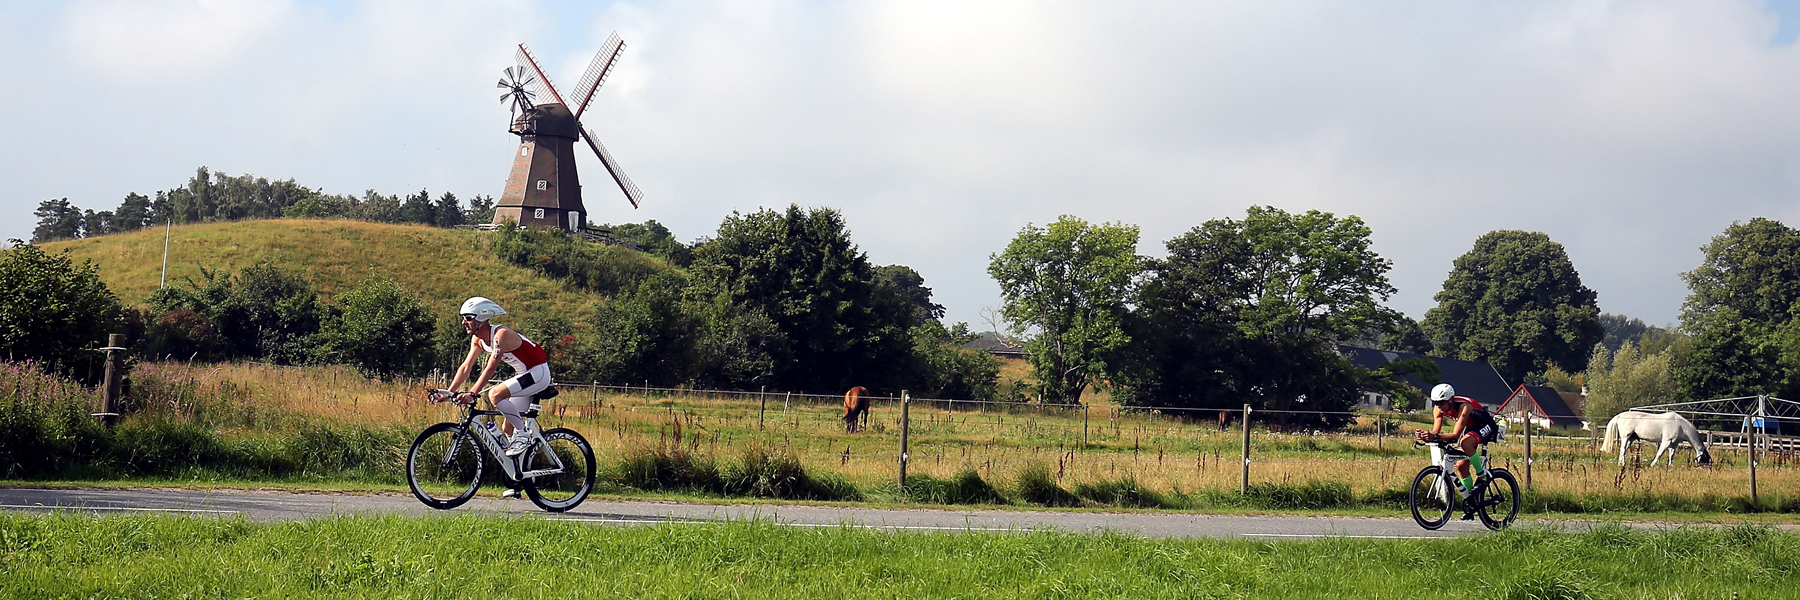 IRONMAN Copenhagen athletes biking through the green countryside next to horses and a windmill